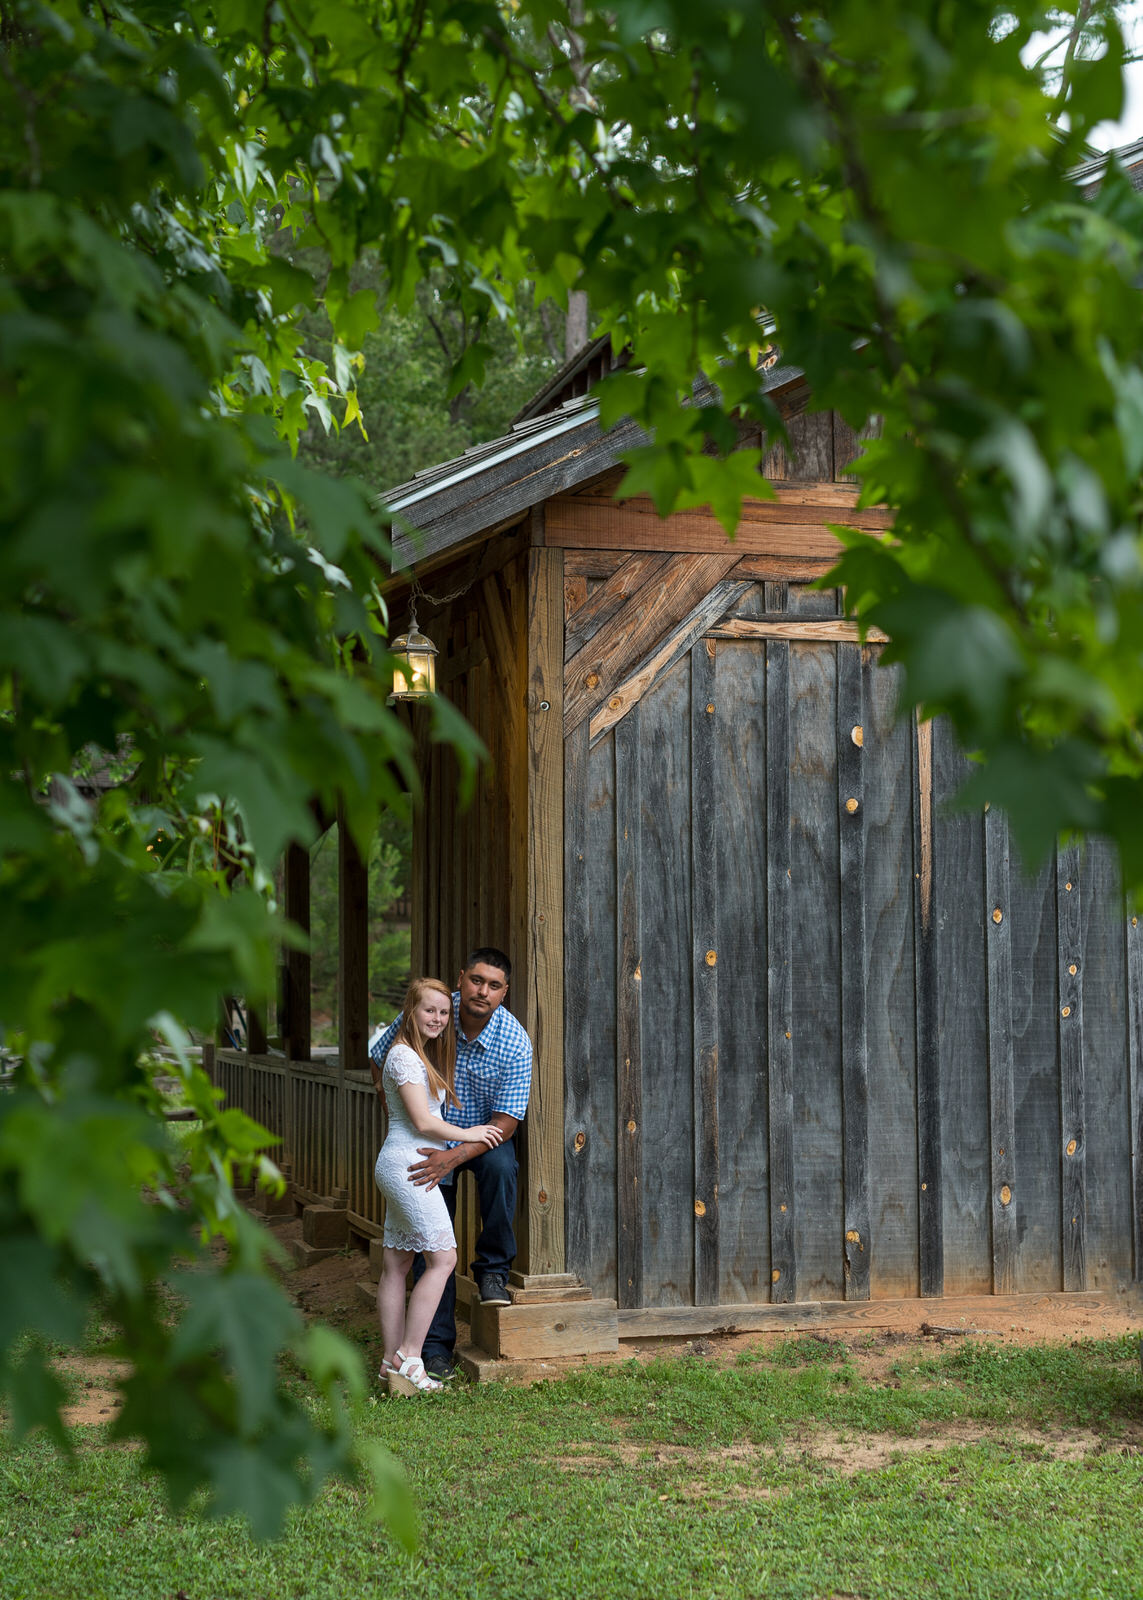 Cartersville Georgia engagement photography